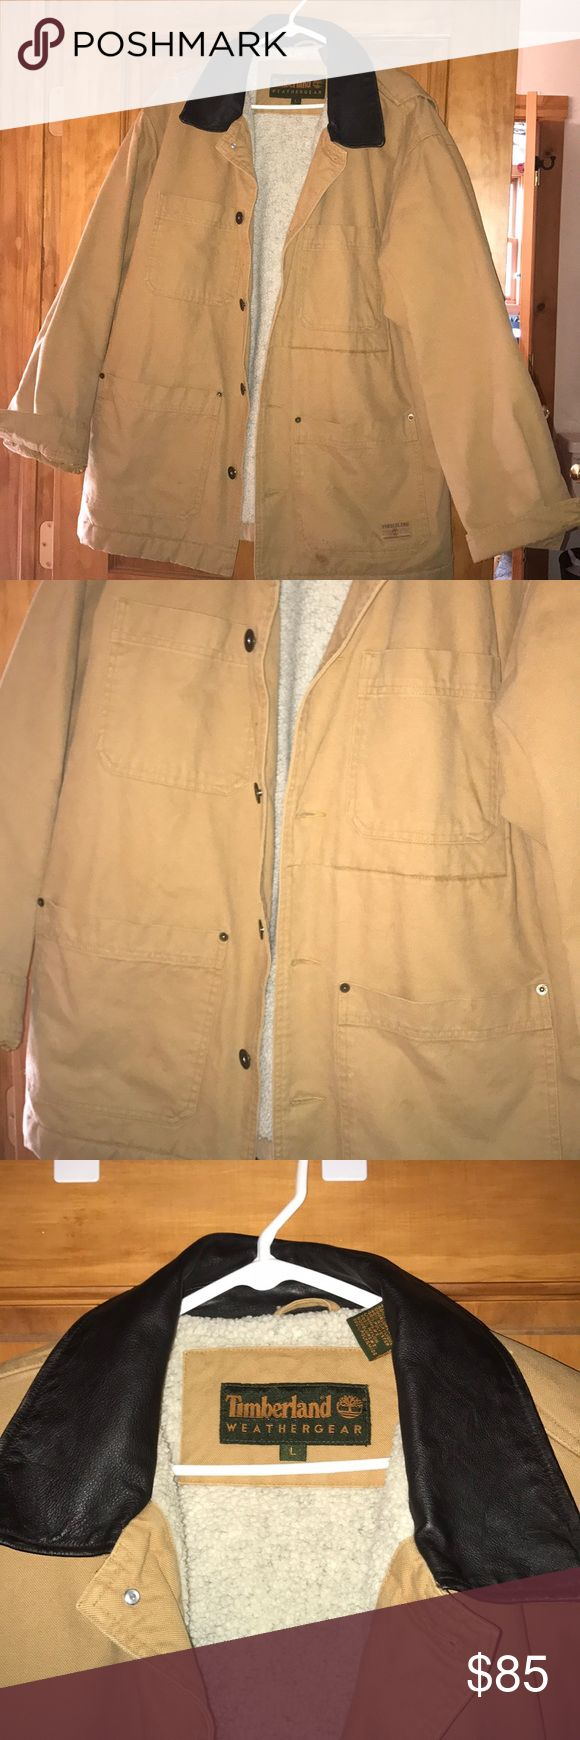 Men's timberland jacket Has double pockets on front. No flaws and never worn. Really warm. Fuzzy inside. Timberland Jackets & Coats